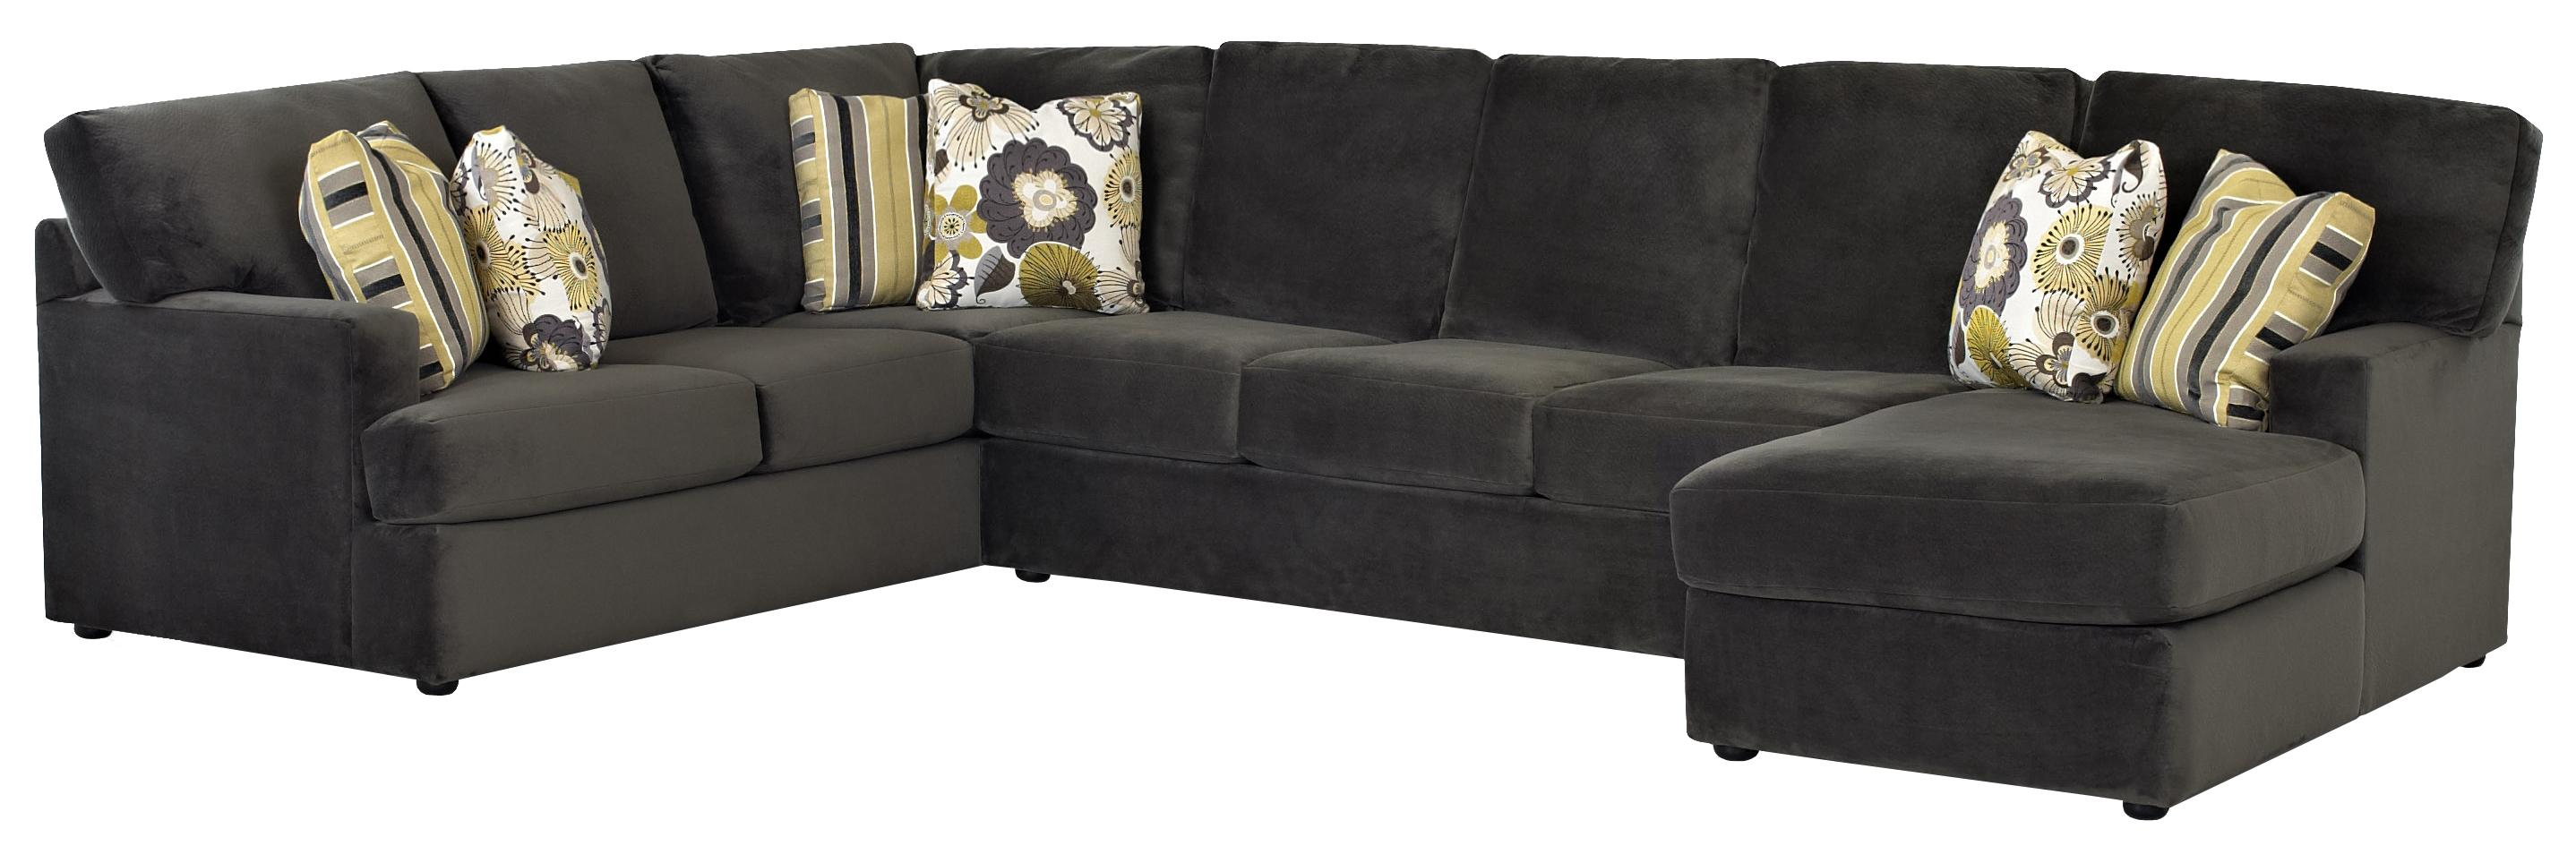 Sectional Sofa with Right Side Chaise by Klaussner